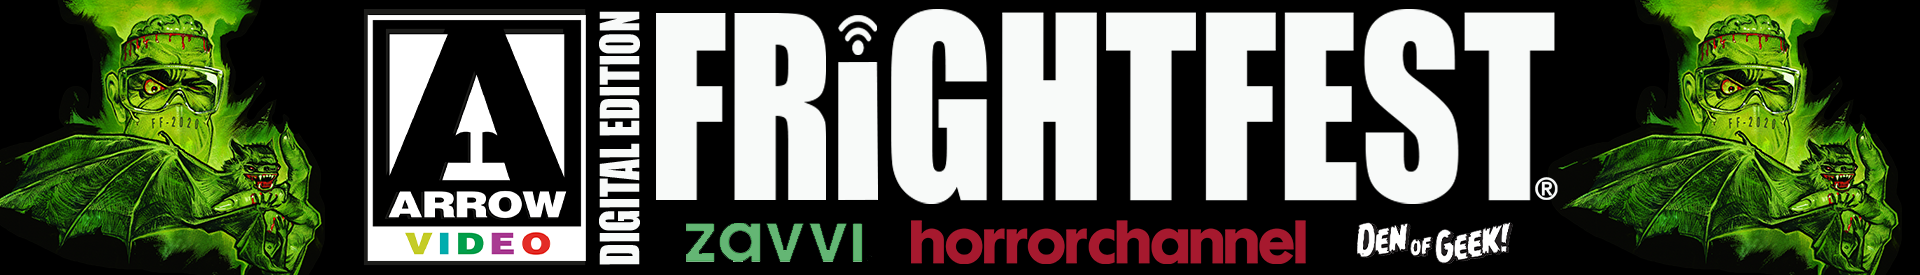 Arrow Video FrightFest: Digital Edition